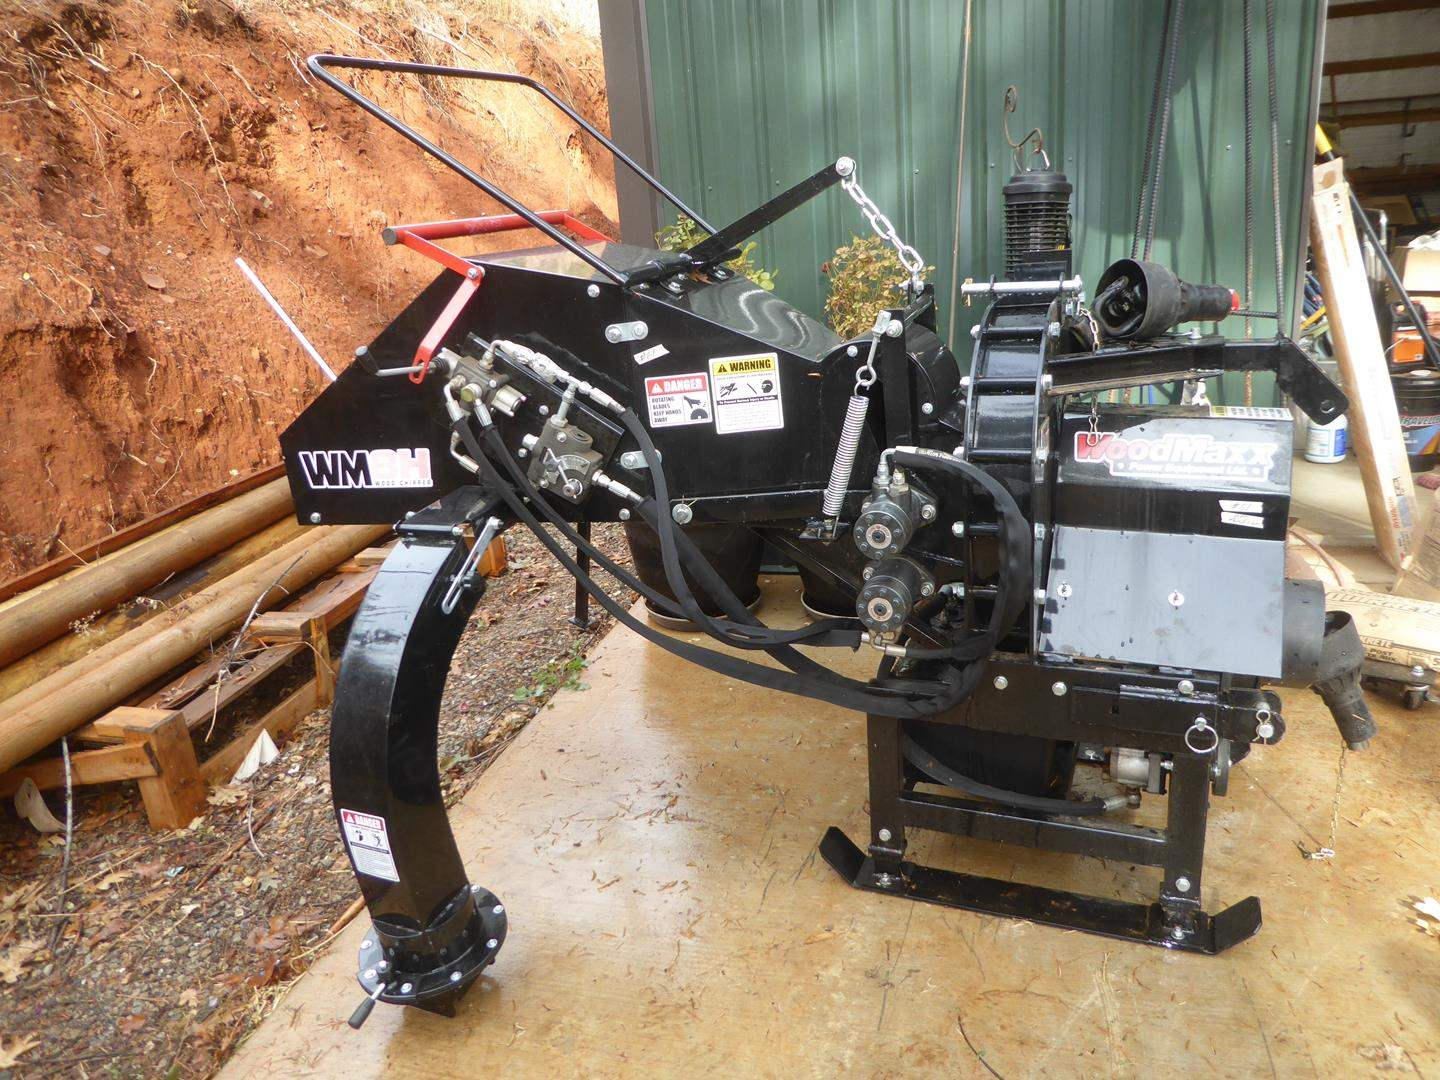 "Lot # 61 - WoodMaxx 8"" PTO Wood Chipper - Like New Just Purchased this year (main image)"